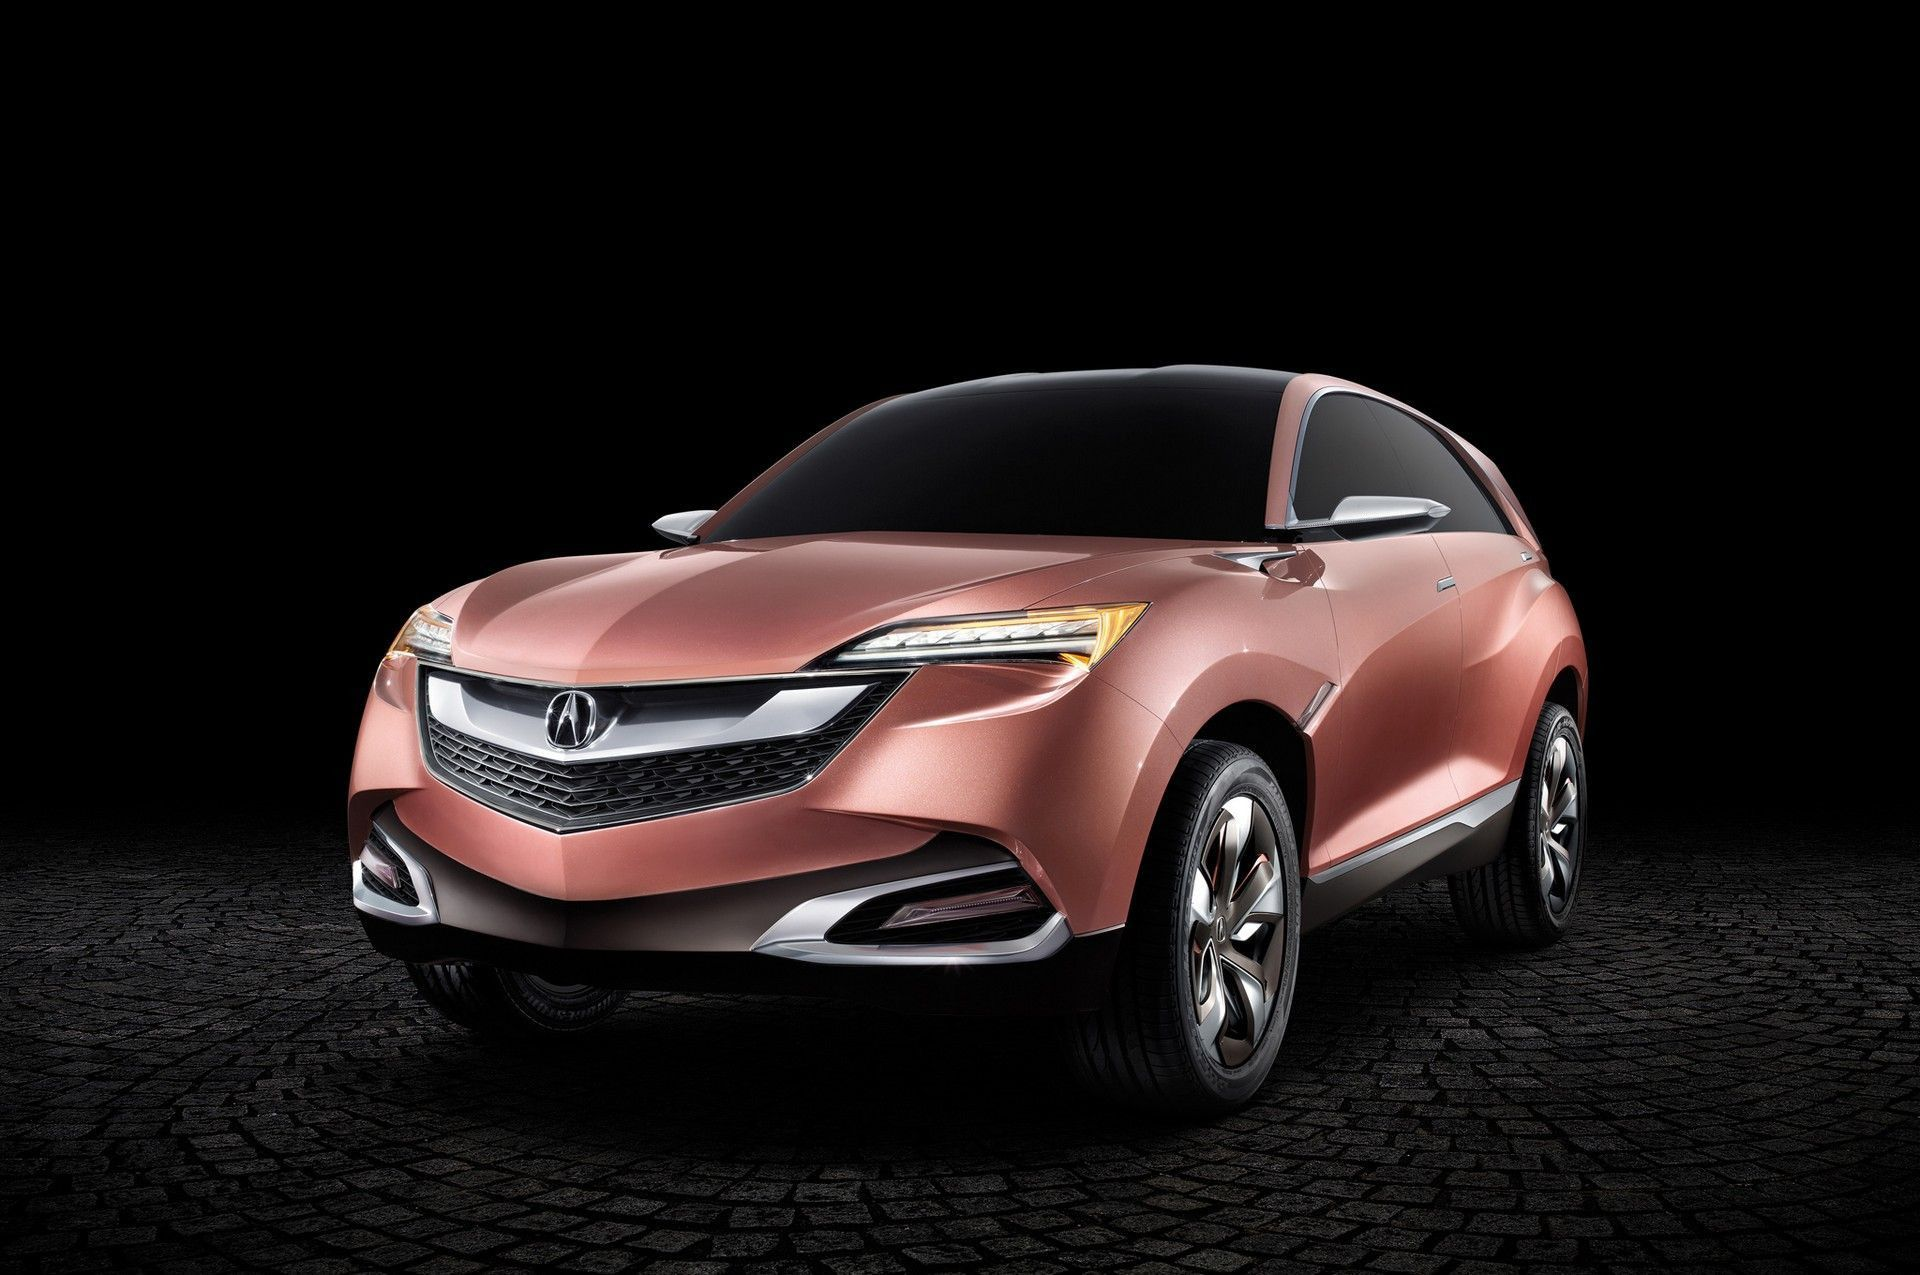 Release Date For 2020 Acura Rdx Review And Specs The Effective Pictures We Offer You About Super Cars A Quality Picture Can Tell You Many Th Best New Cars Acura Rdx